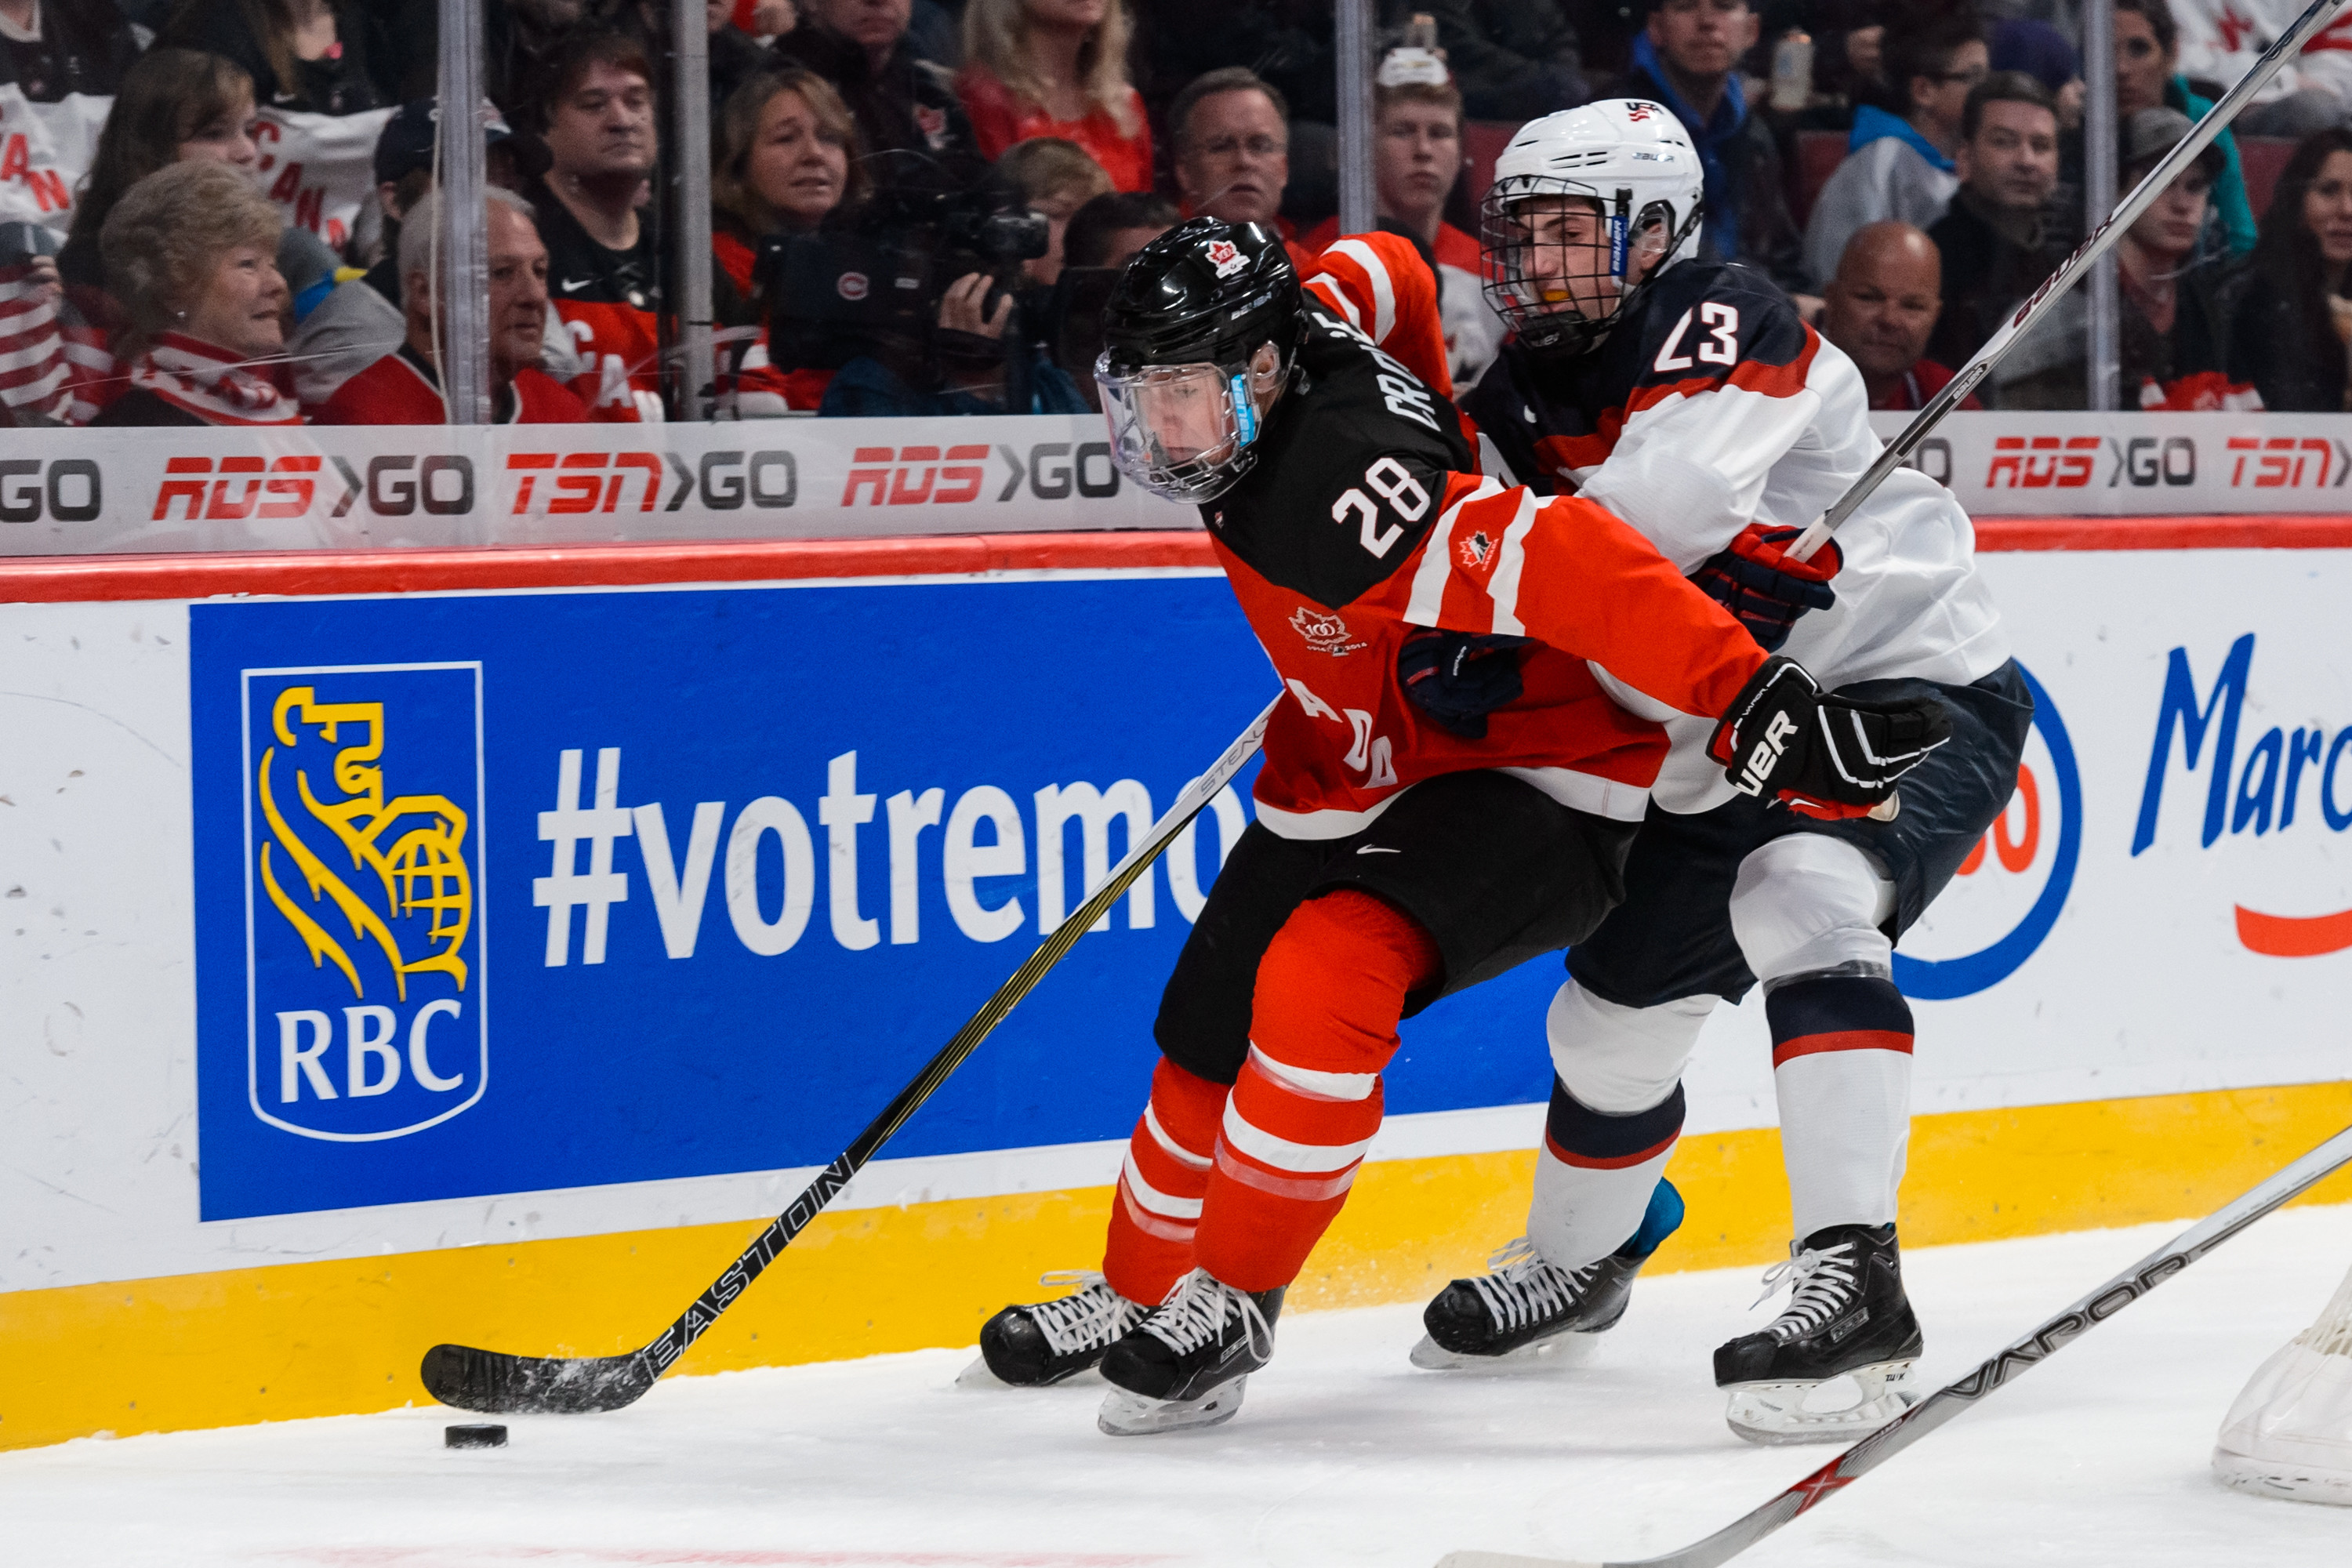 Lawson Crouse #28 of Team Canada shields Zach Werenski #23 of Team USA off the puck at the 2015 WJC.